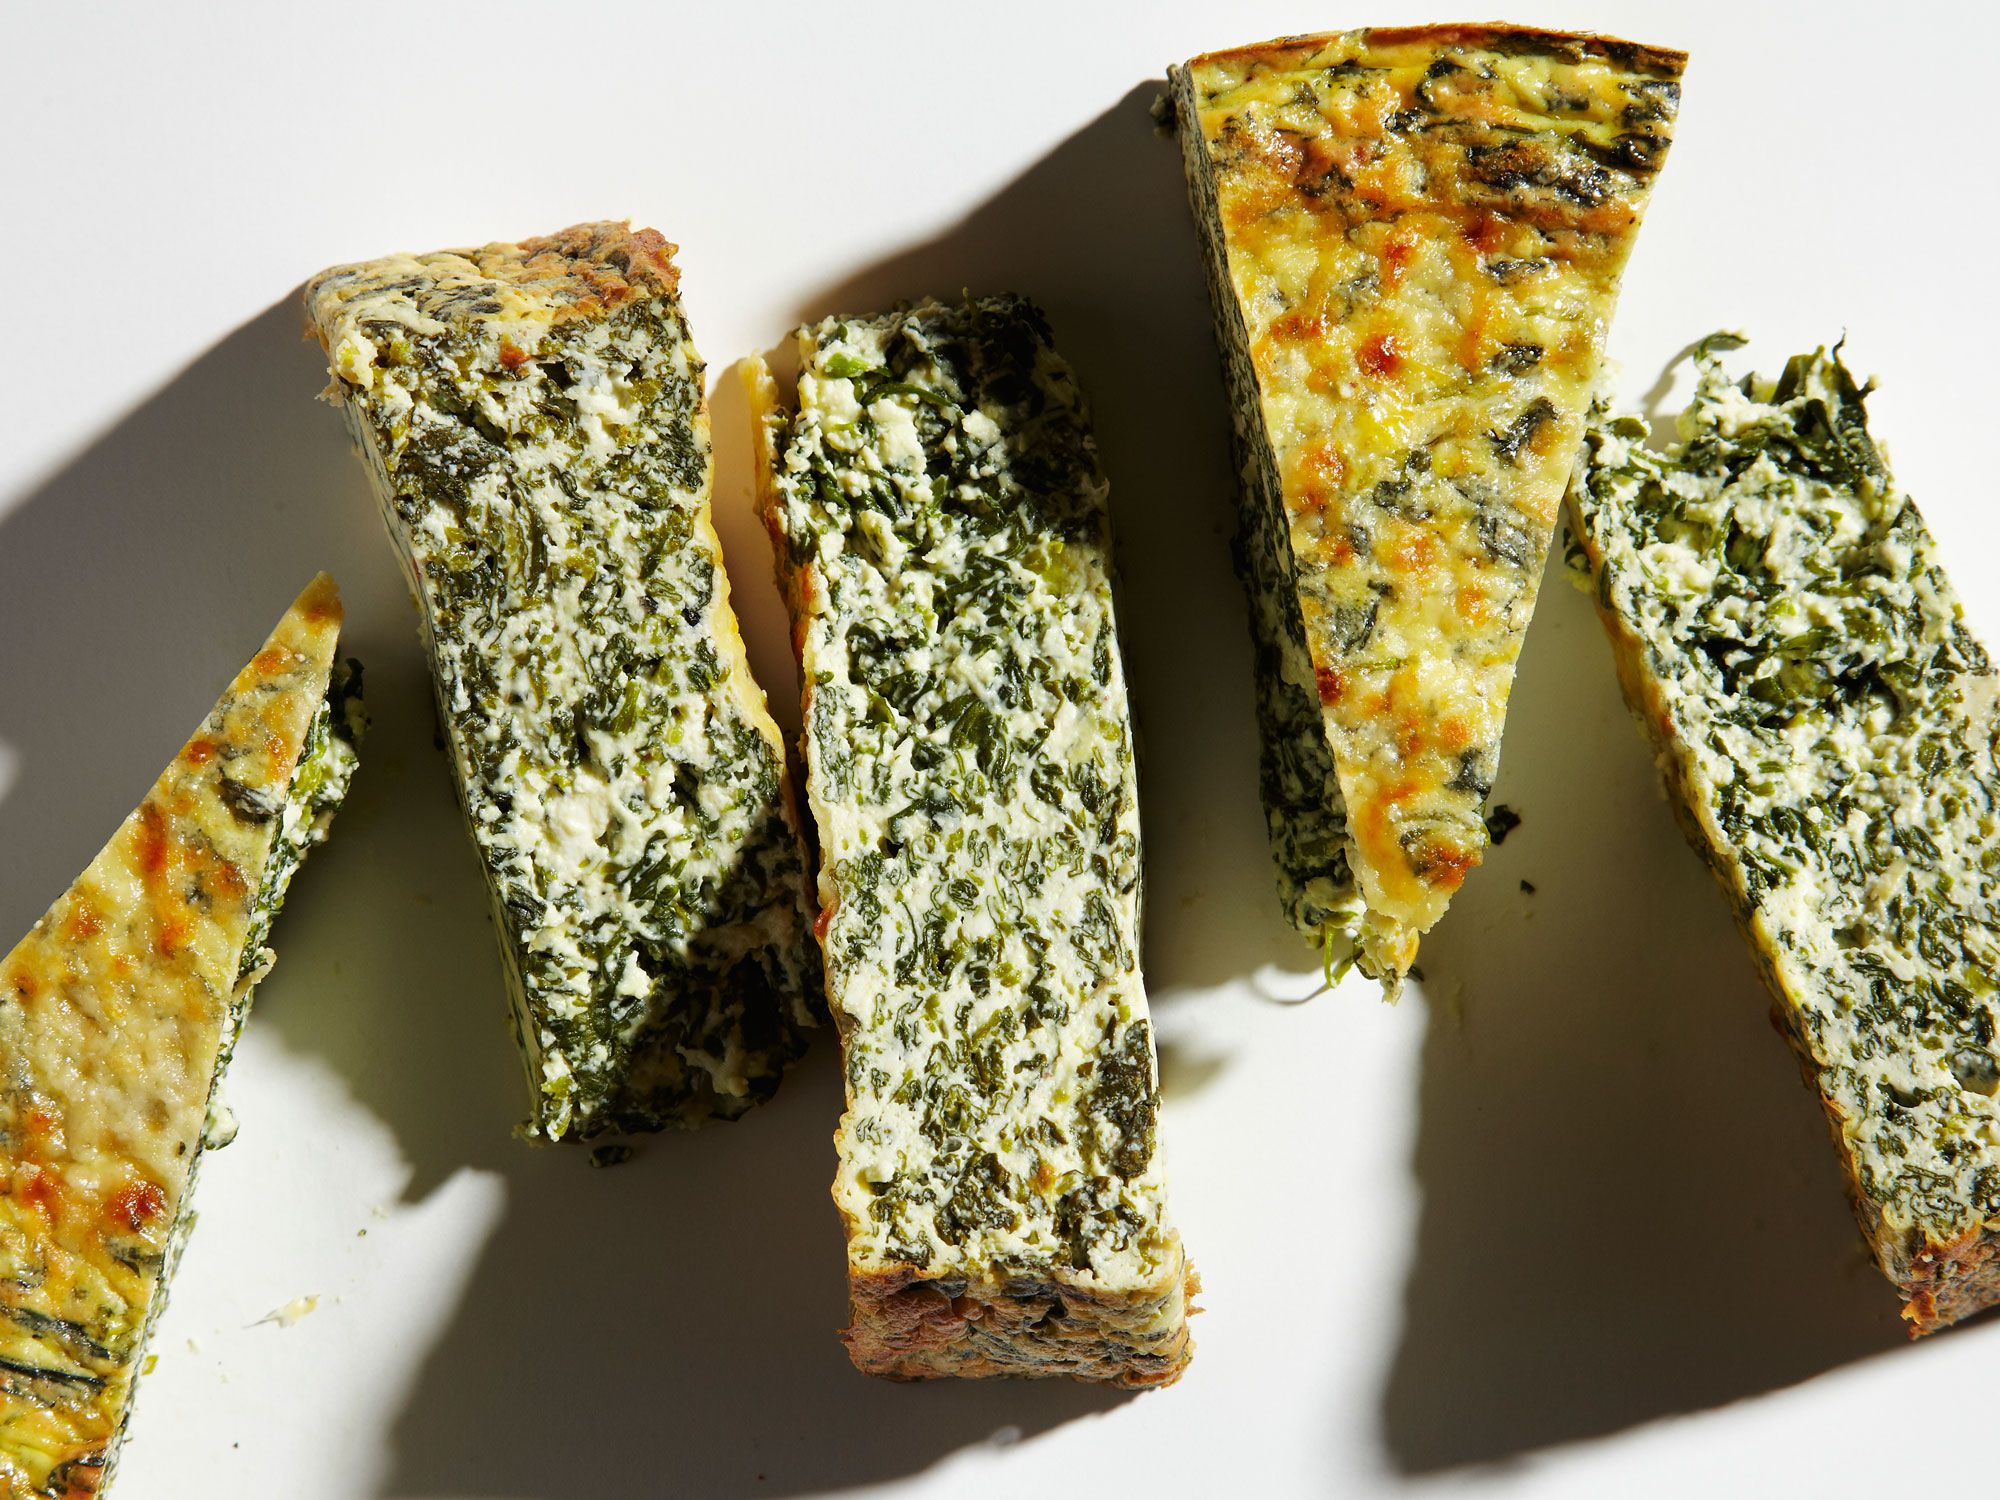 """Packed with grassy, spicy watercress and plenty of cheese, this frittata-like tart works wonders at brunch. Get the recipe for <a href=""""http://www.saveur.com/watercress-ricotta-frittata-torte-recipe"""">Watercress Ricotta Torte</a>"""